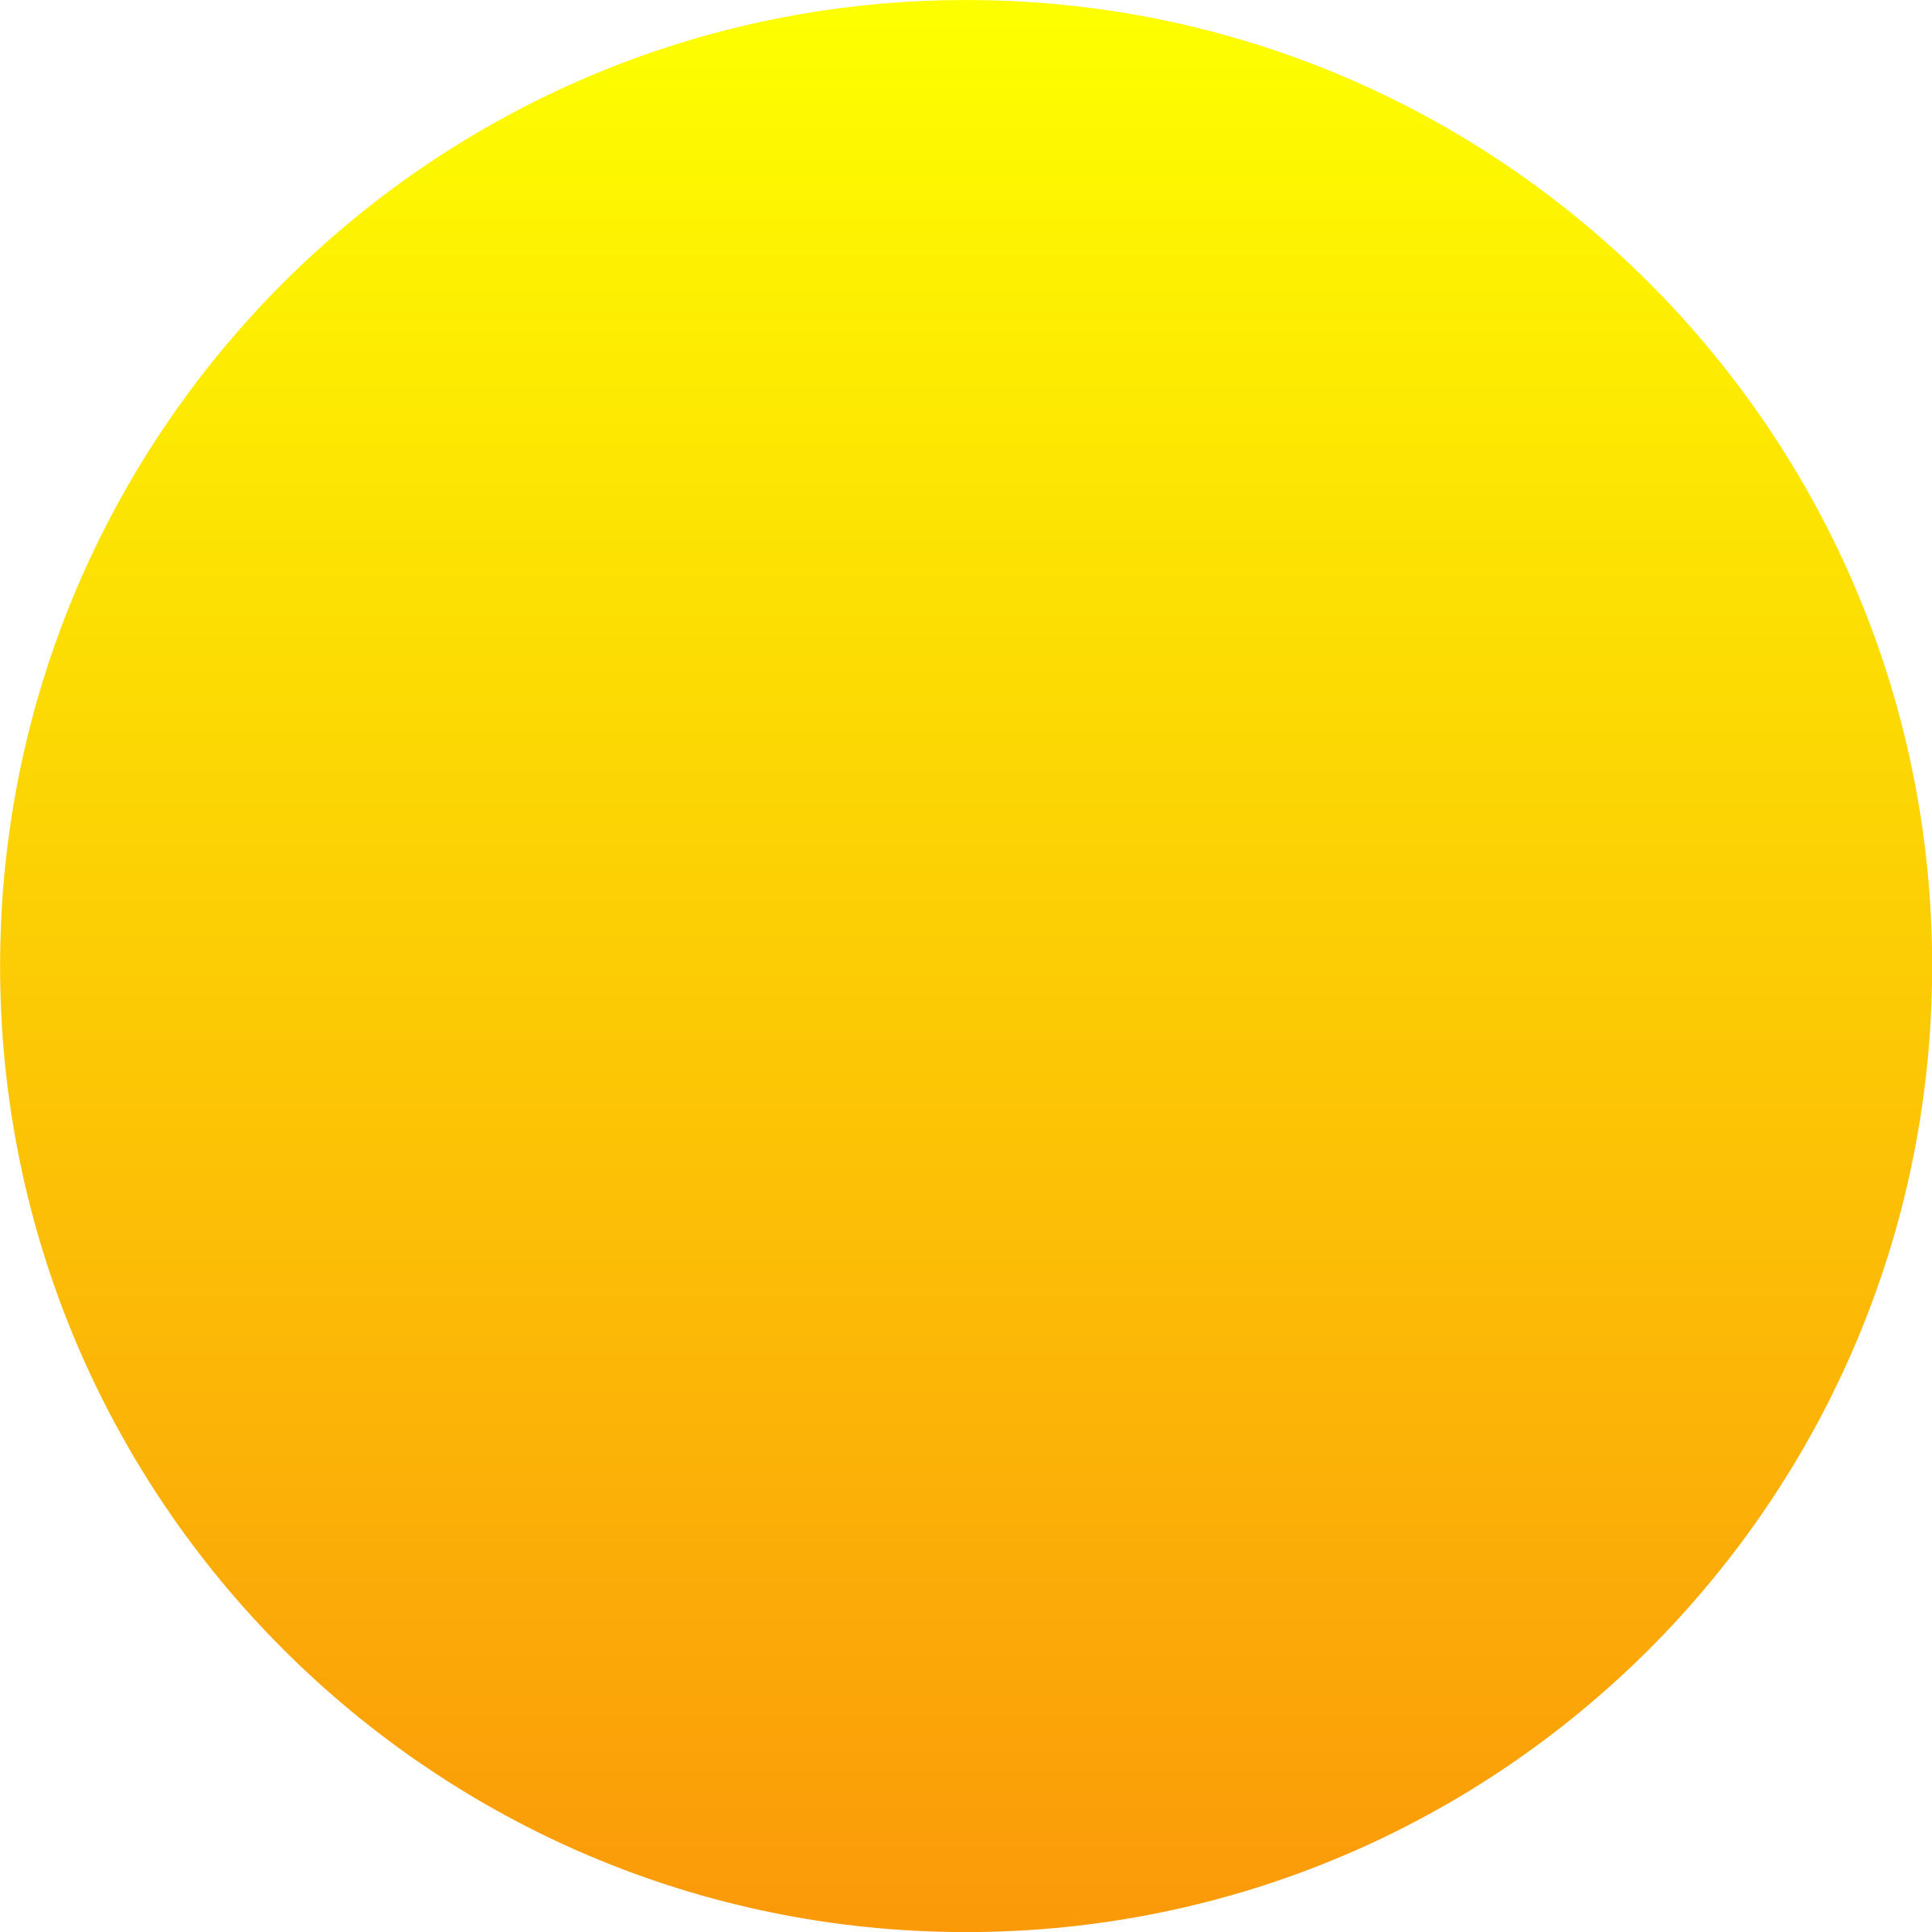 Clipart setting sun graphic free Painting Sun PNG Image - Picpng graphic free